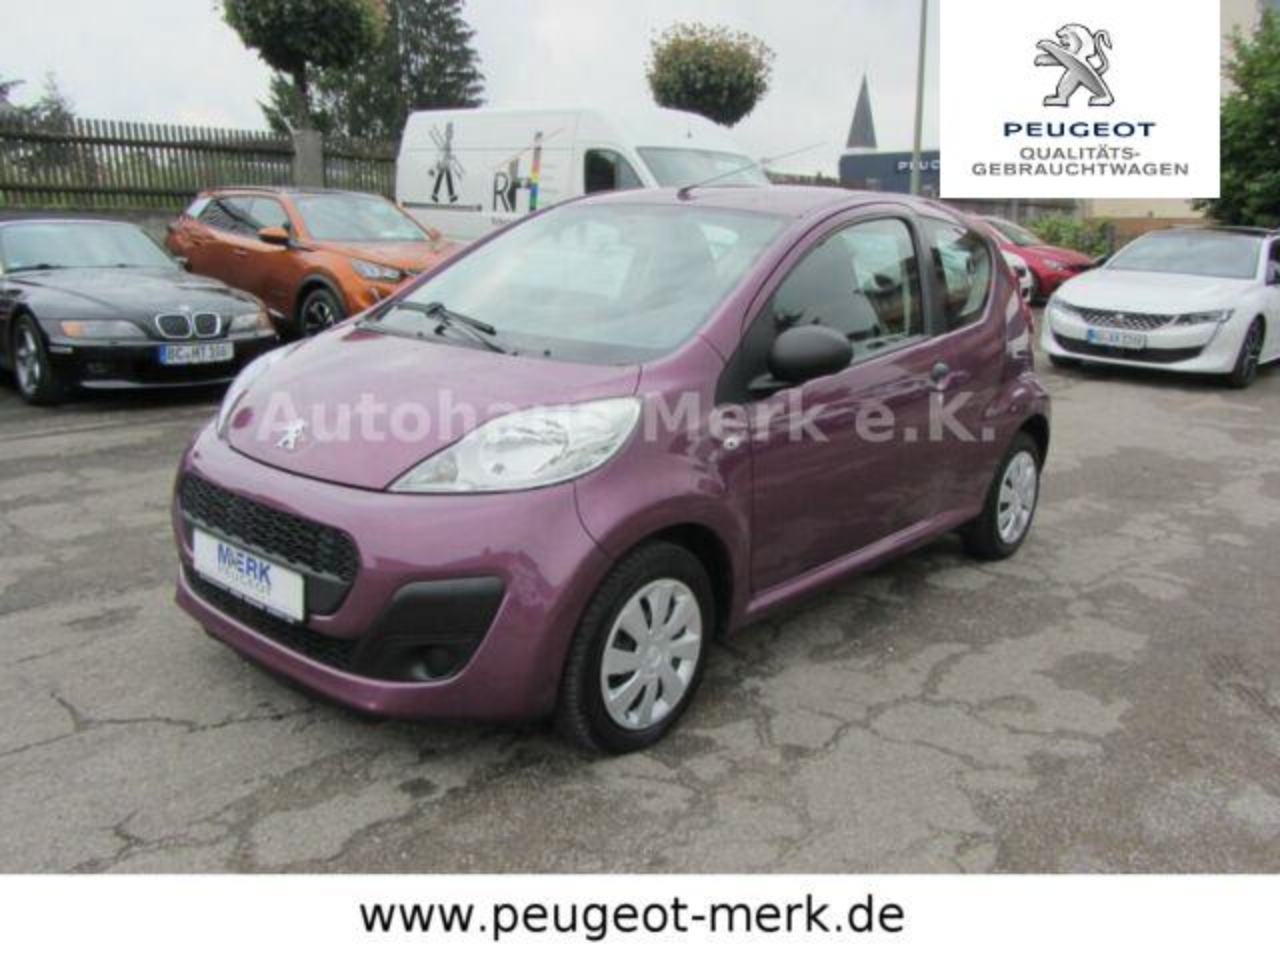 Peugeot 107 Access, Standheizung